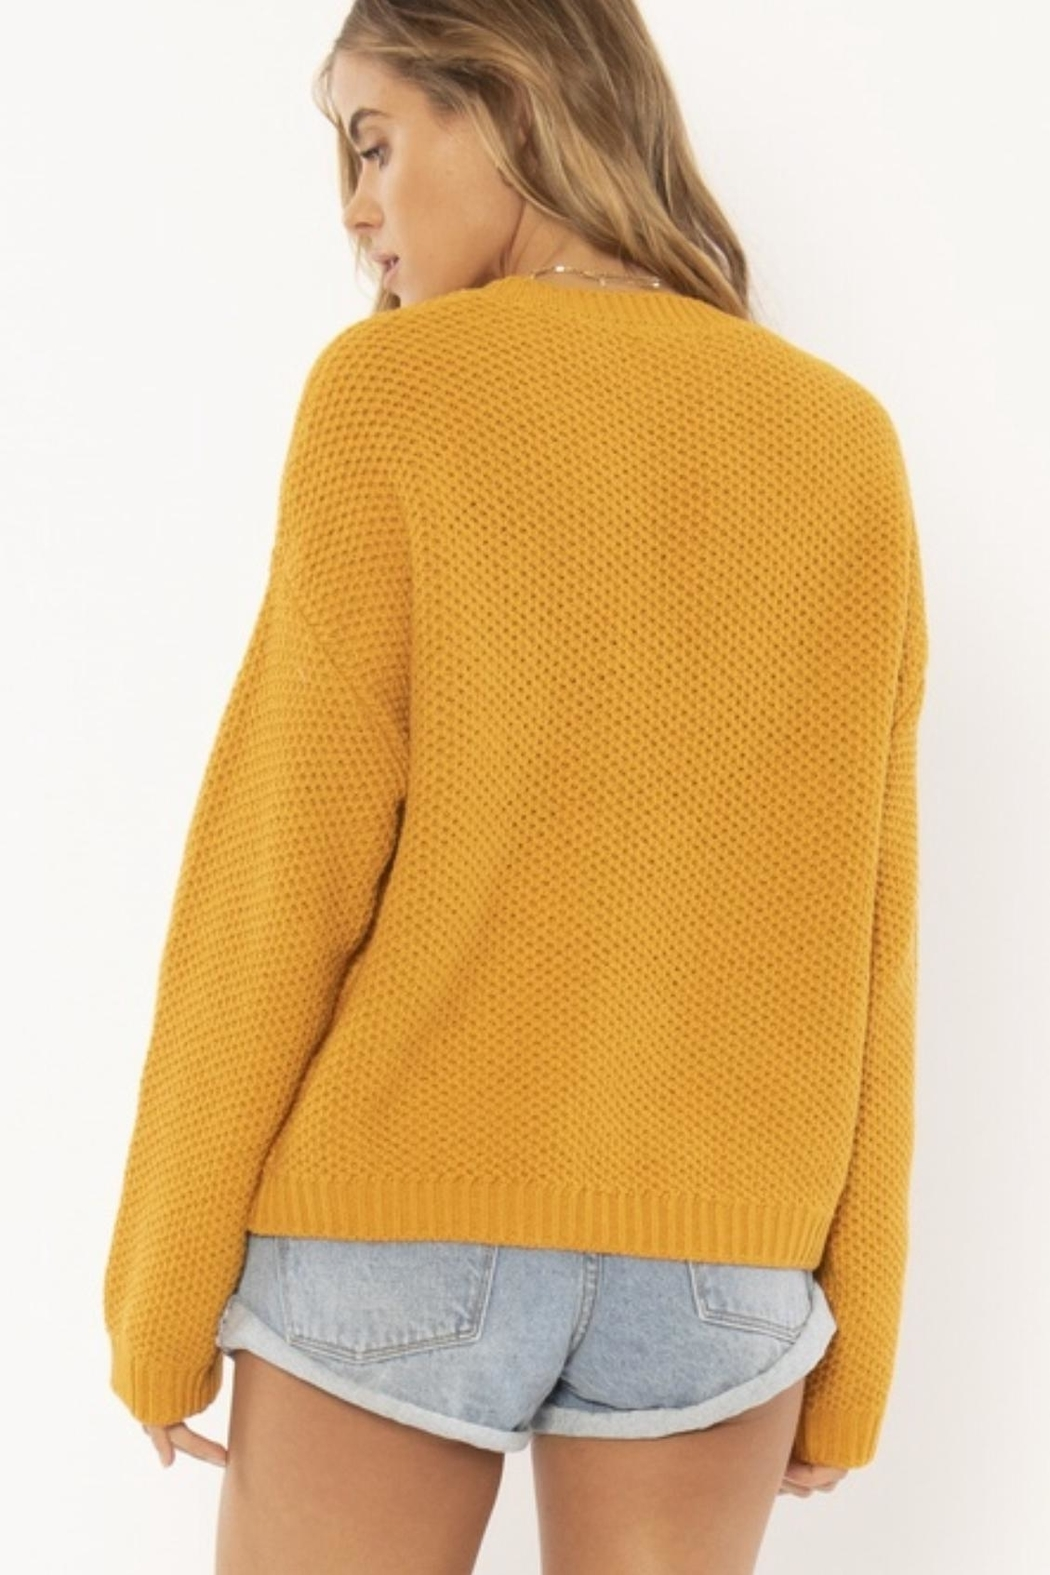 AMUSE SOCIETY Mustard Knit Sweater - Front Full Image